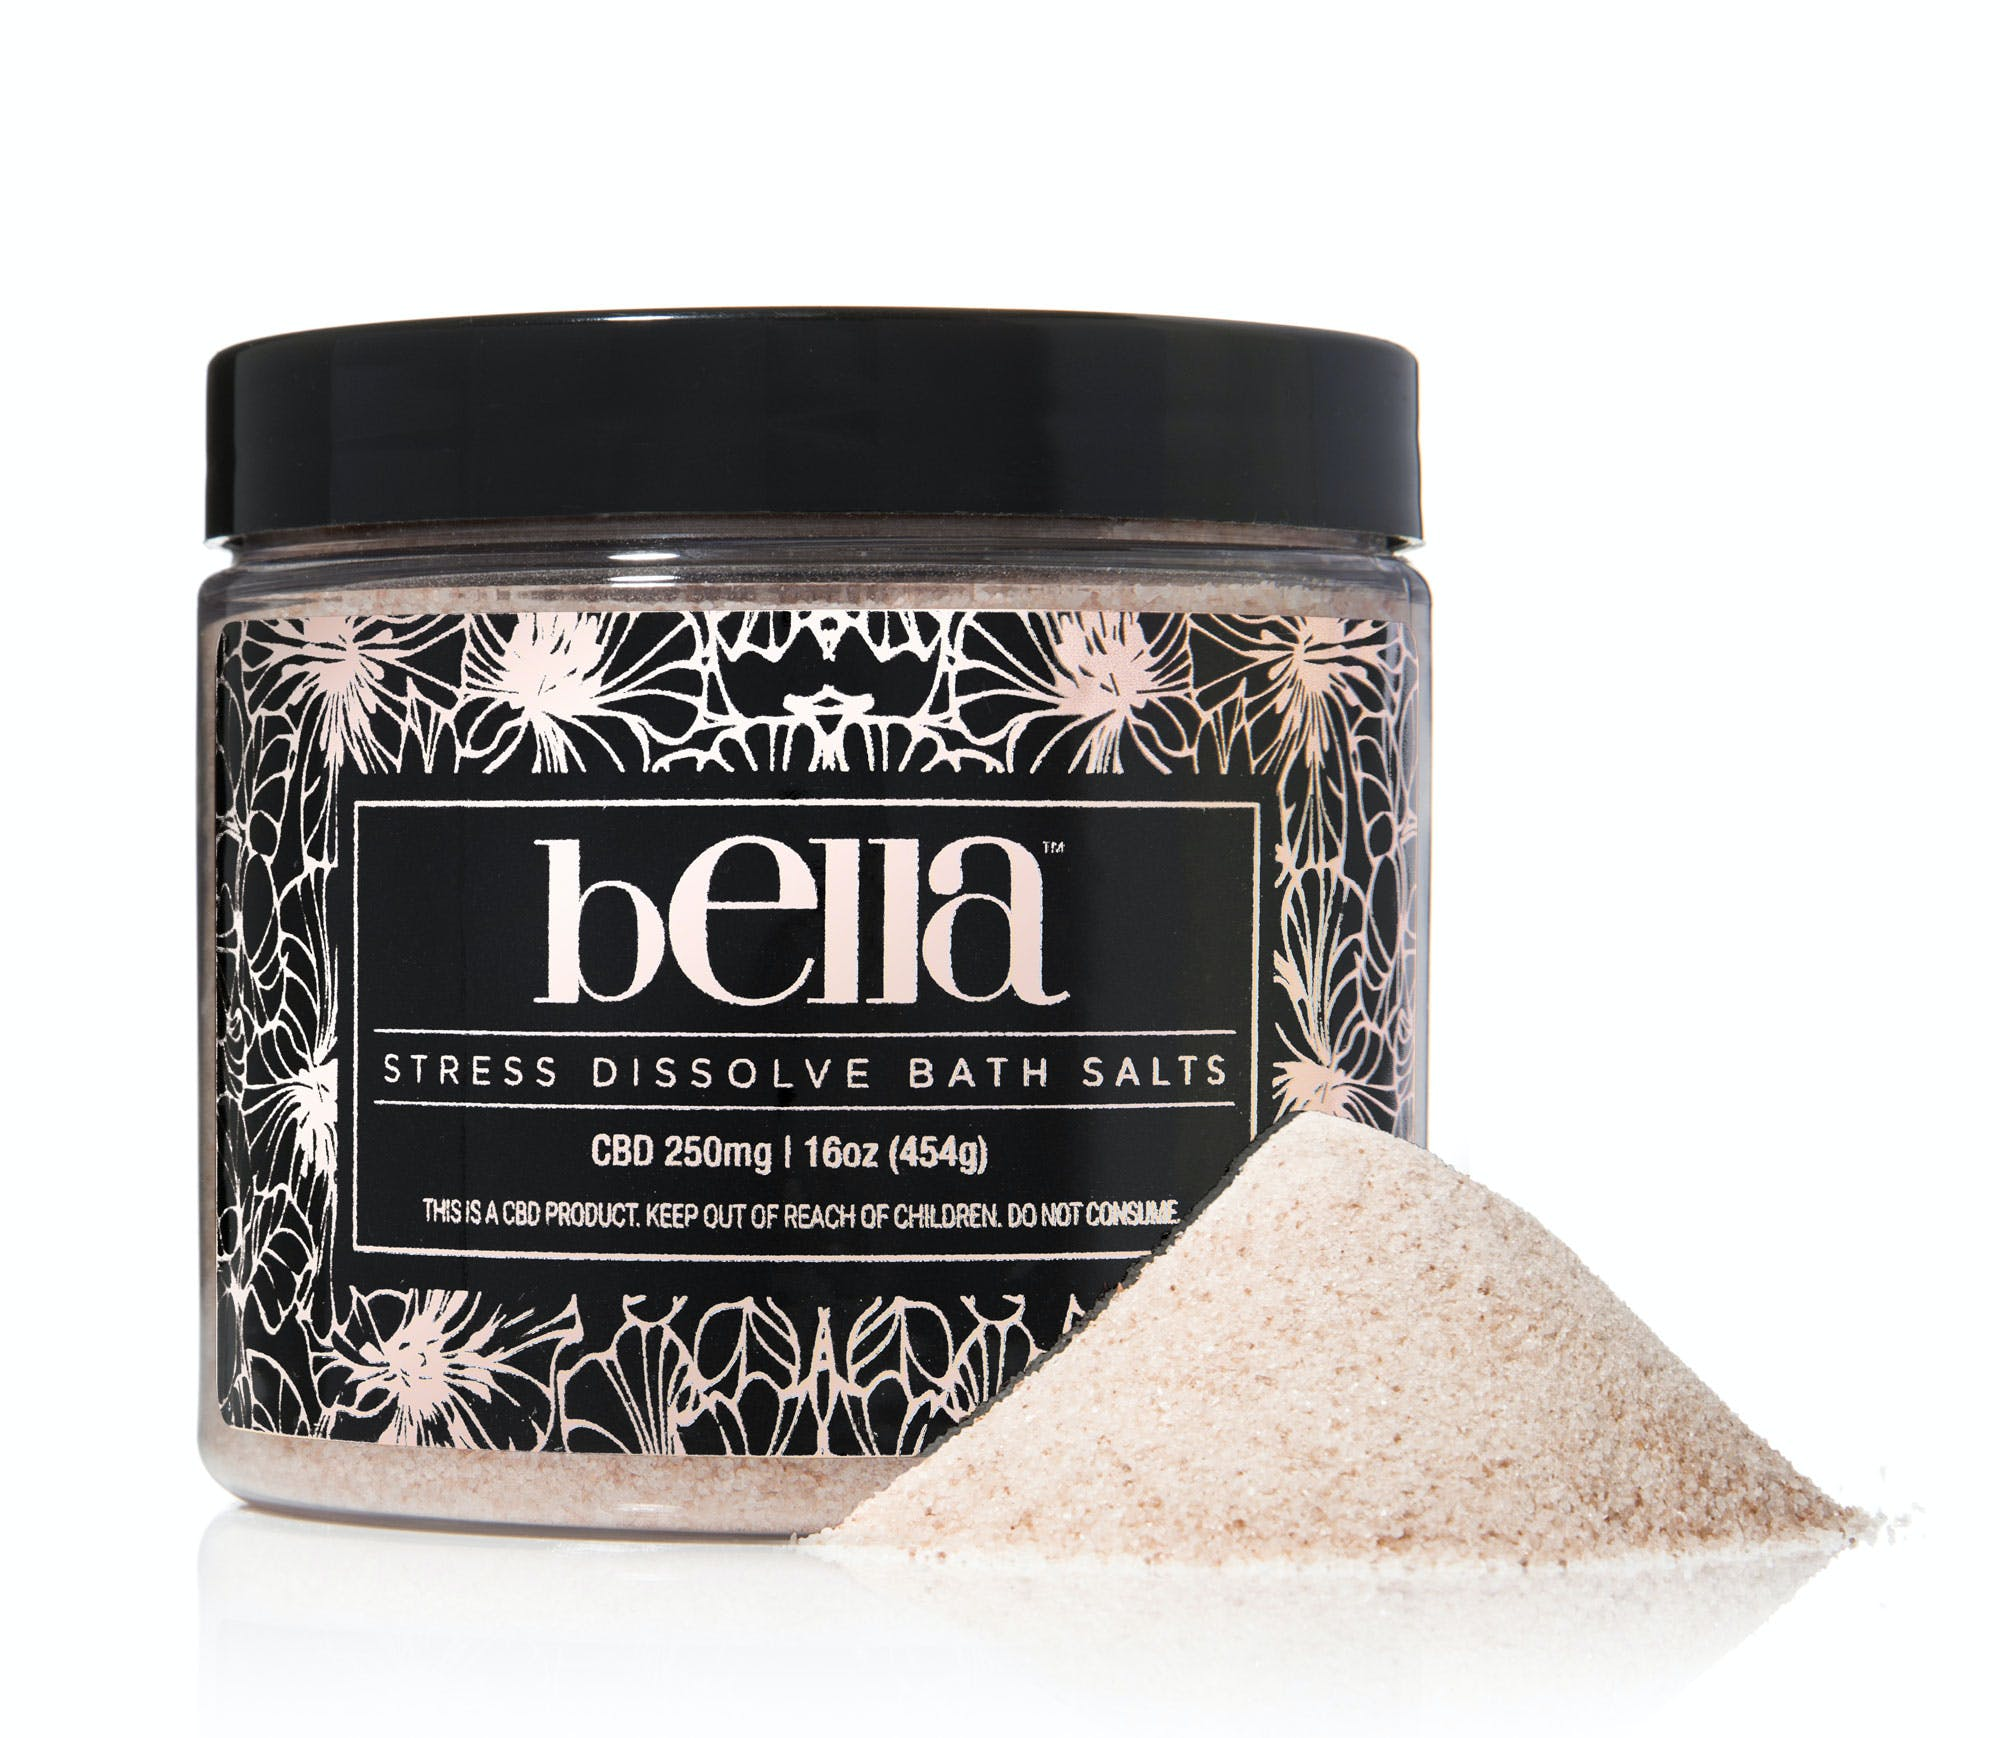 Bellabathsalt Parents With Children Living At Home Are Smoking More Cannabis: Study